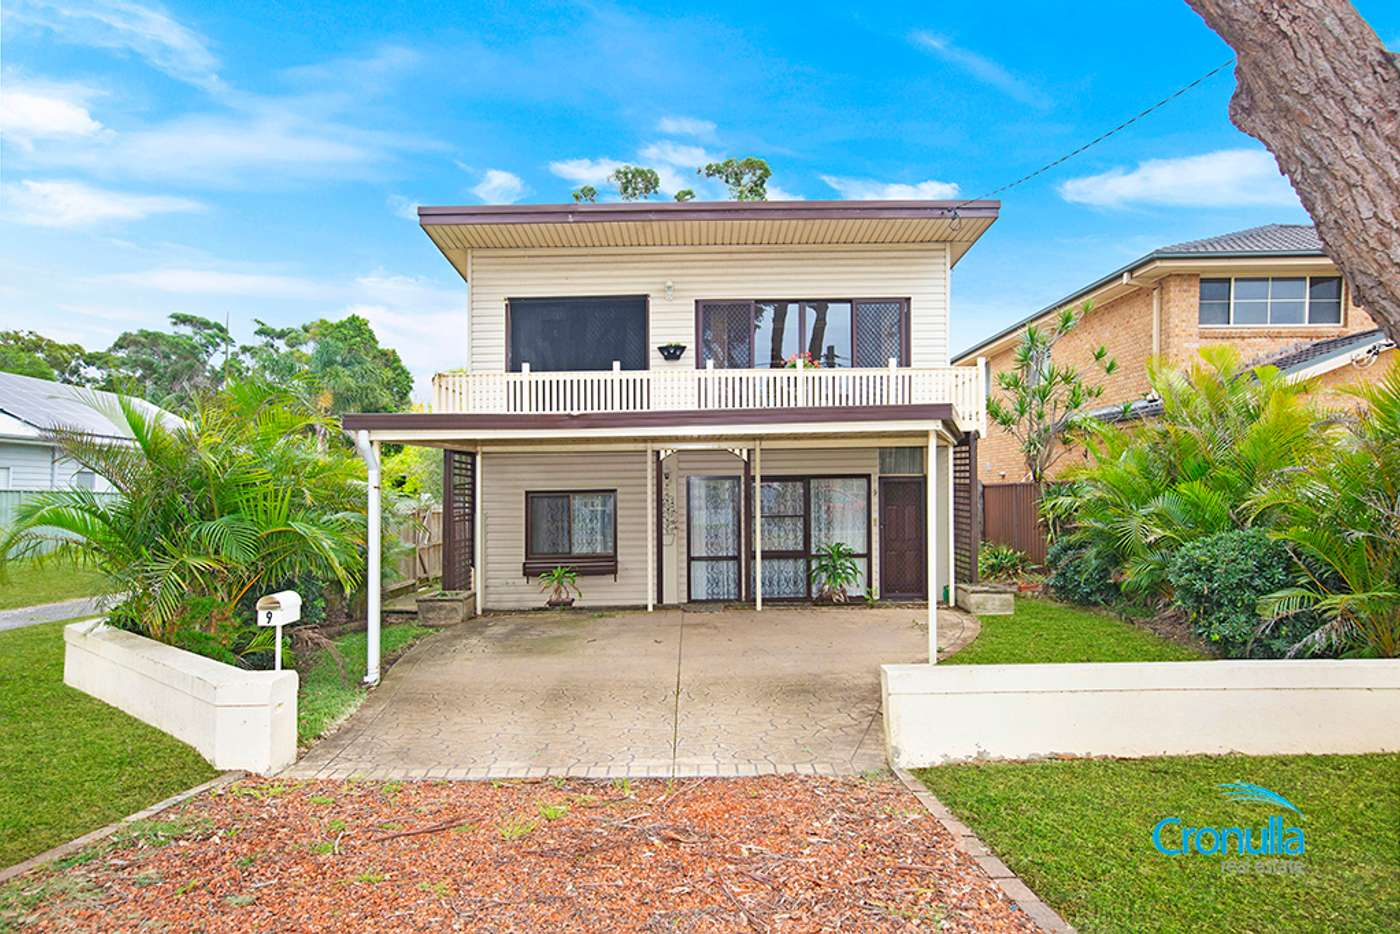 Main view of Homely house listing, 9 Silver Beach Road, Kurnell NSW 2231